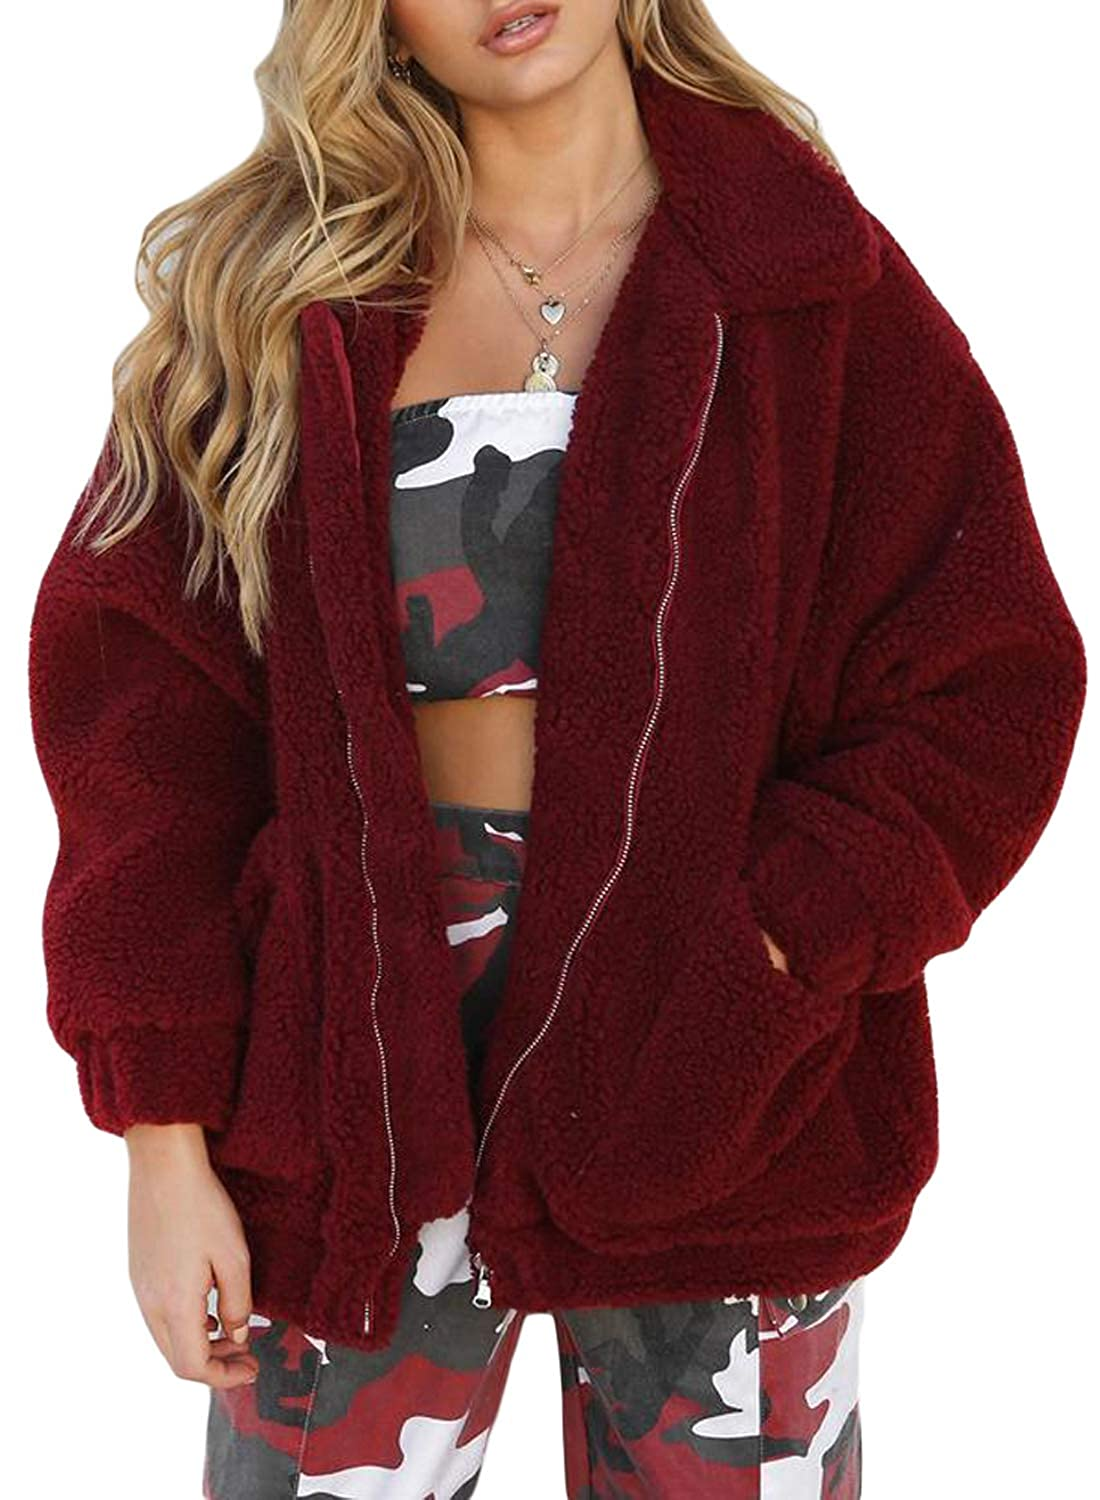 Aleumdr Womens Warm Faux Fur Zip Sweater Pockets Fluffy Coat Outwear Jacket S-XXL CH85193